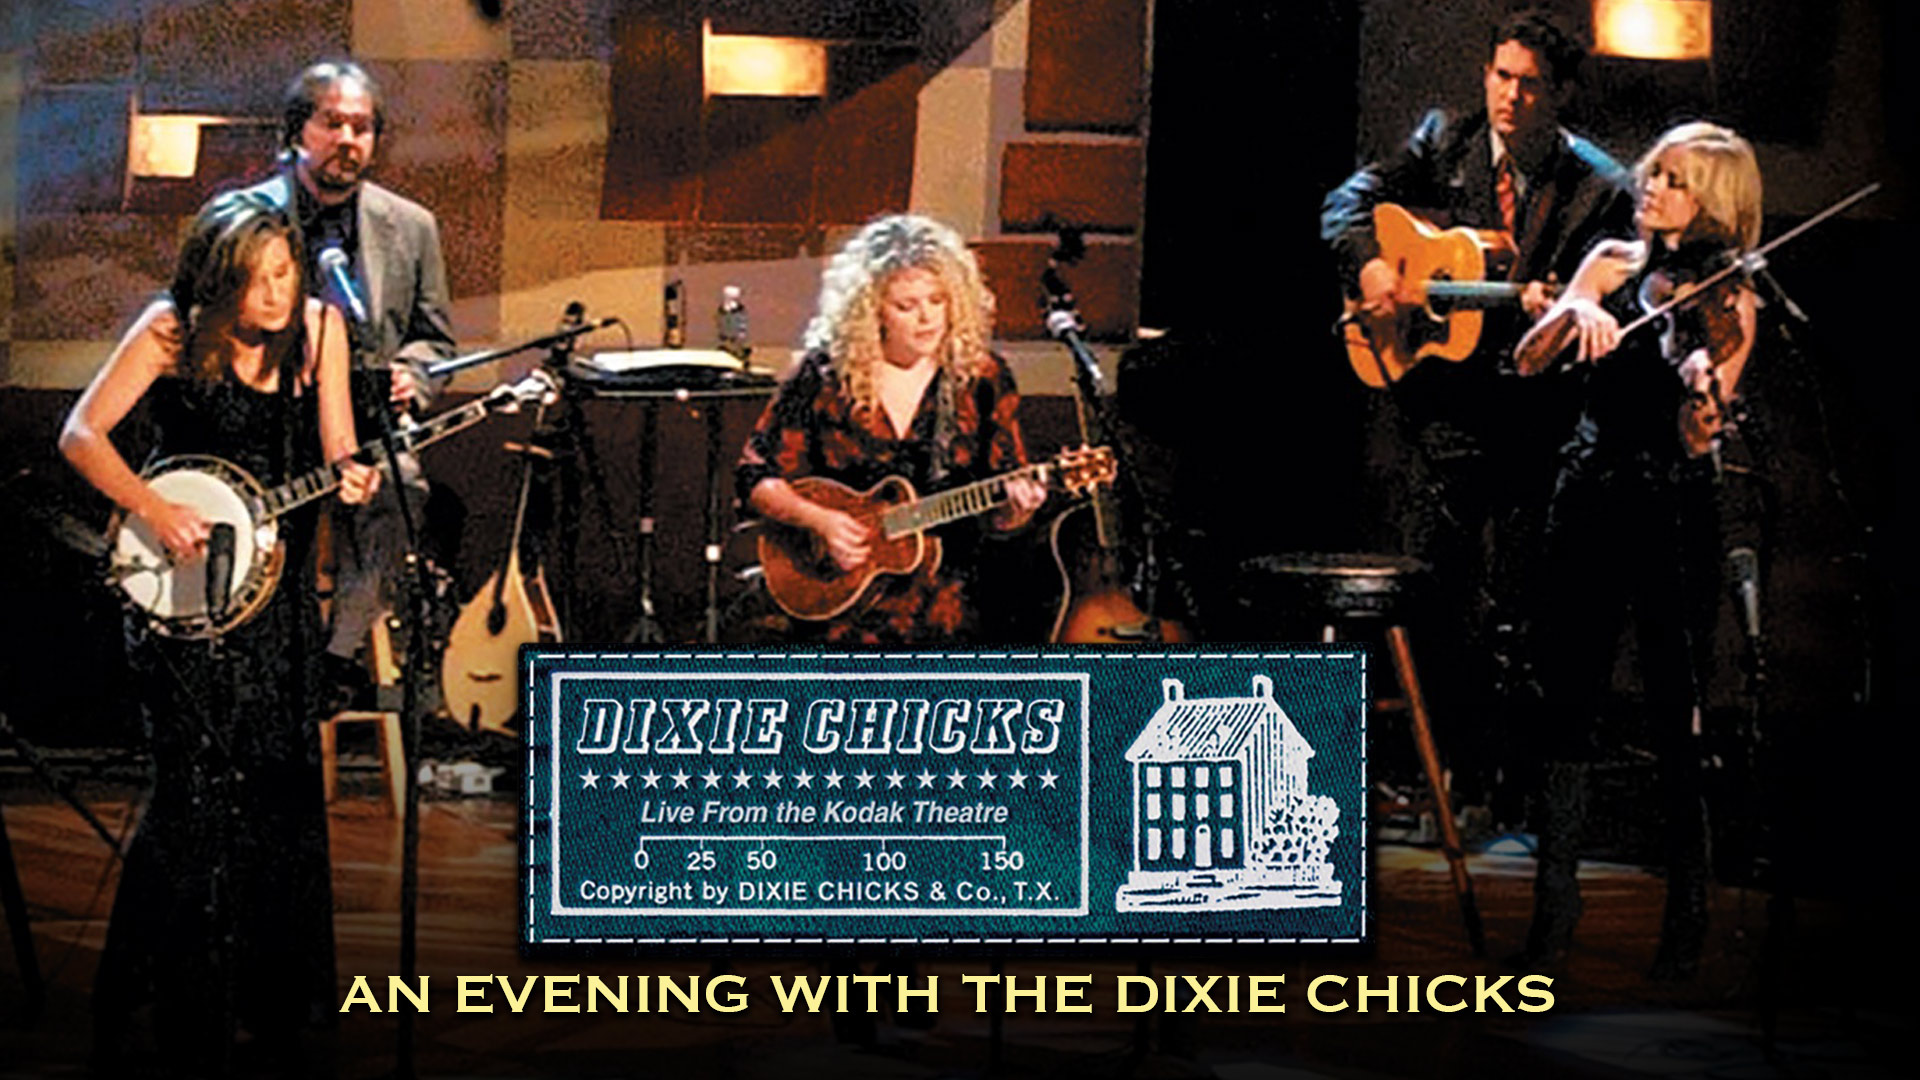 Dixie Chicks: An Evening with the Dixie Chicks